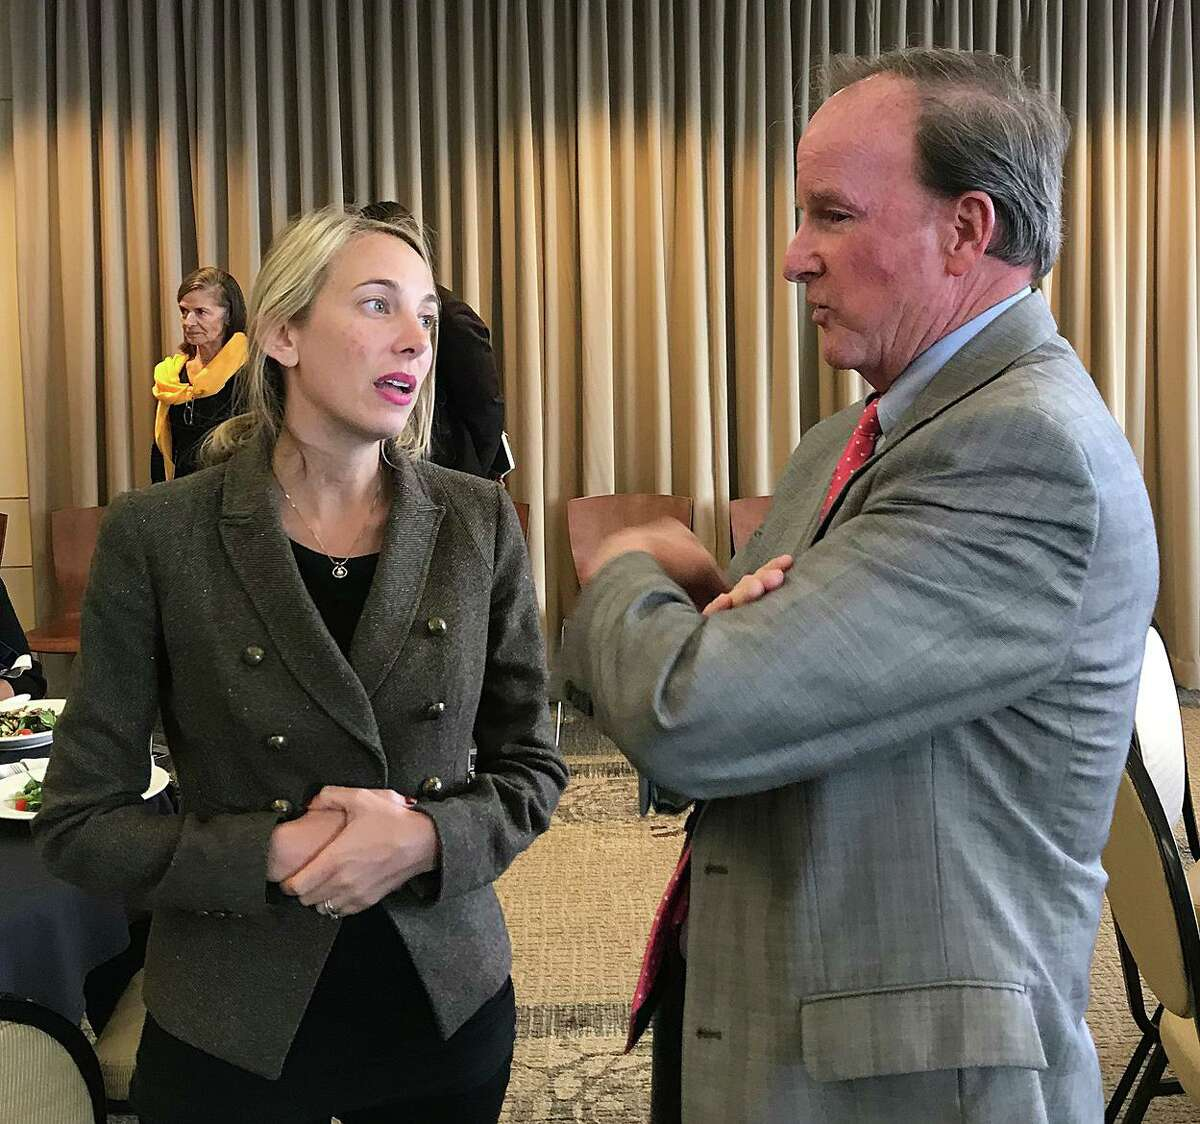 Council member-elect Abbie Kamin, who will represent District C, chats with District E Councilmember Dave Martin during the second day of orientation for the newly elected council members on Tuesday, Dec. 17, 2019, in a conference room at the George R. Brown Convention Center.